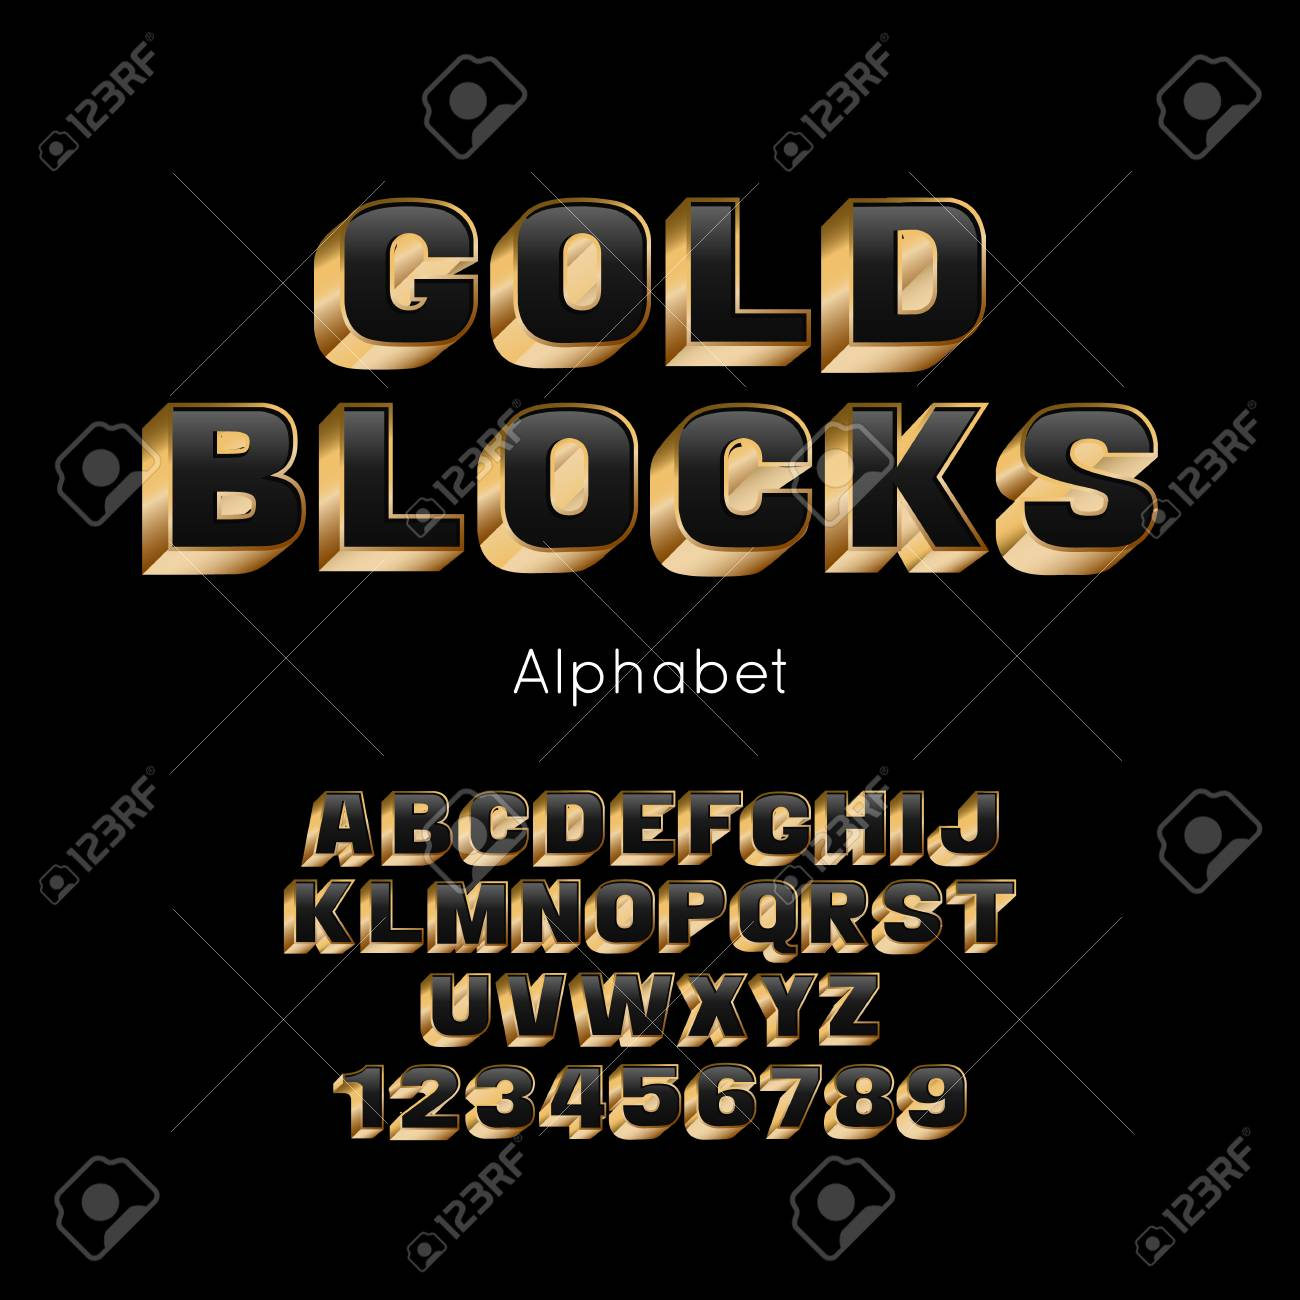 Vector Gold Blocks alphabet and font  3d letters and numbers